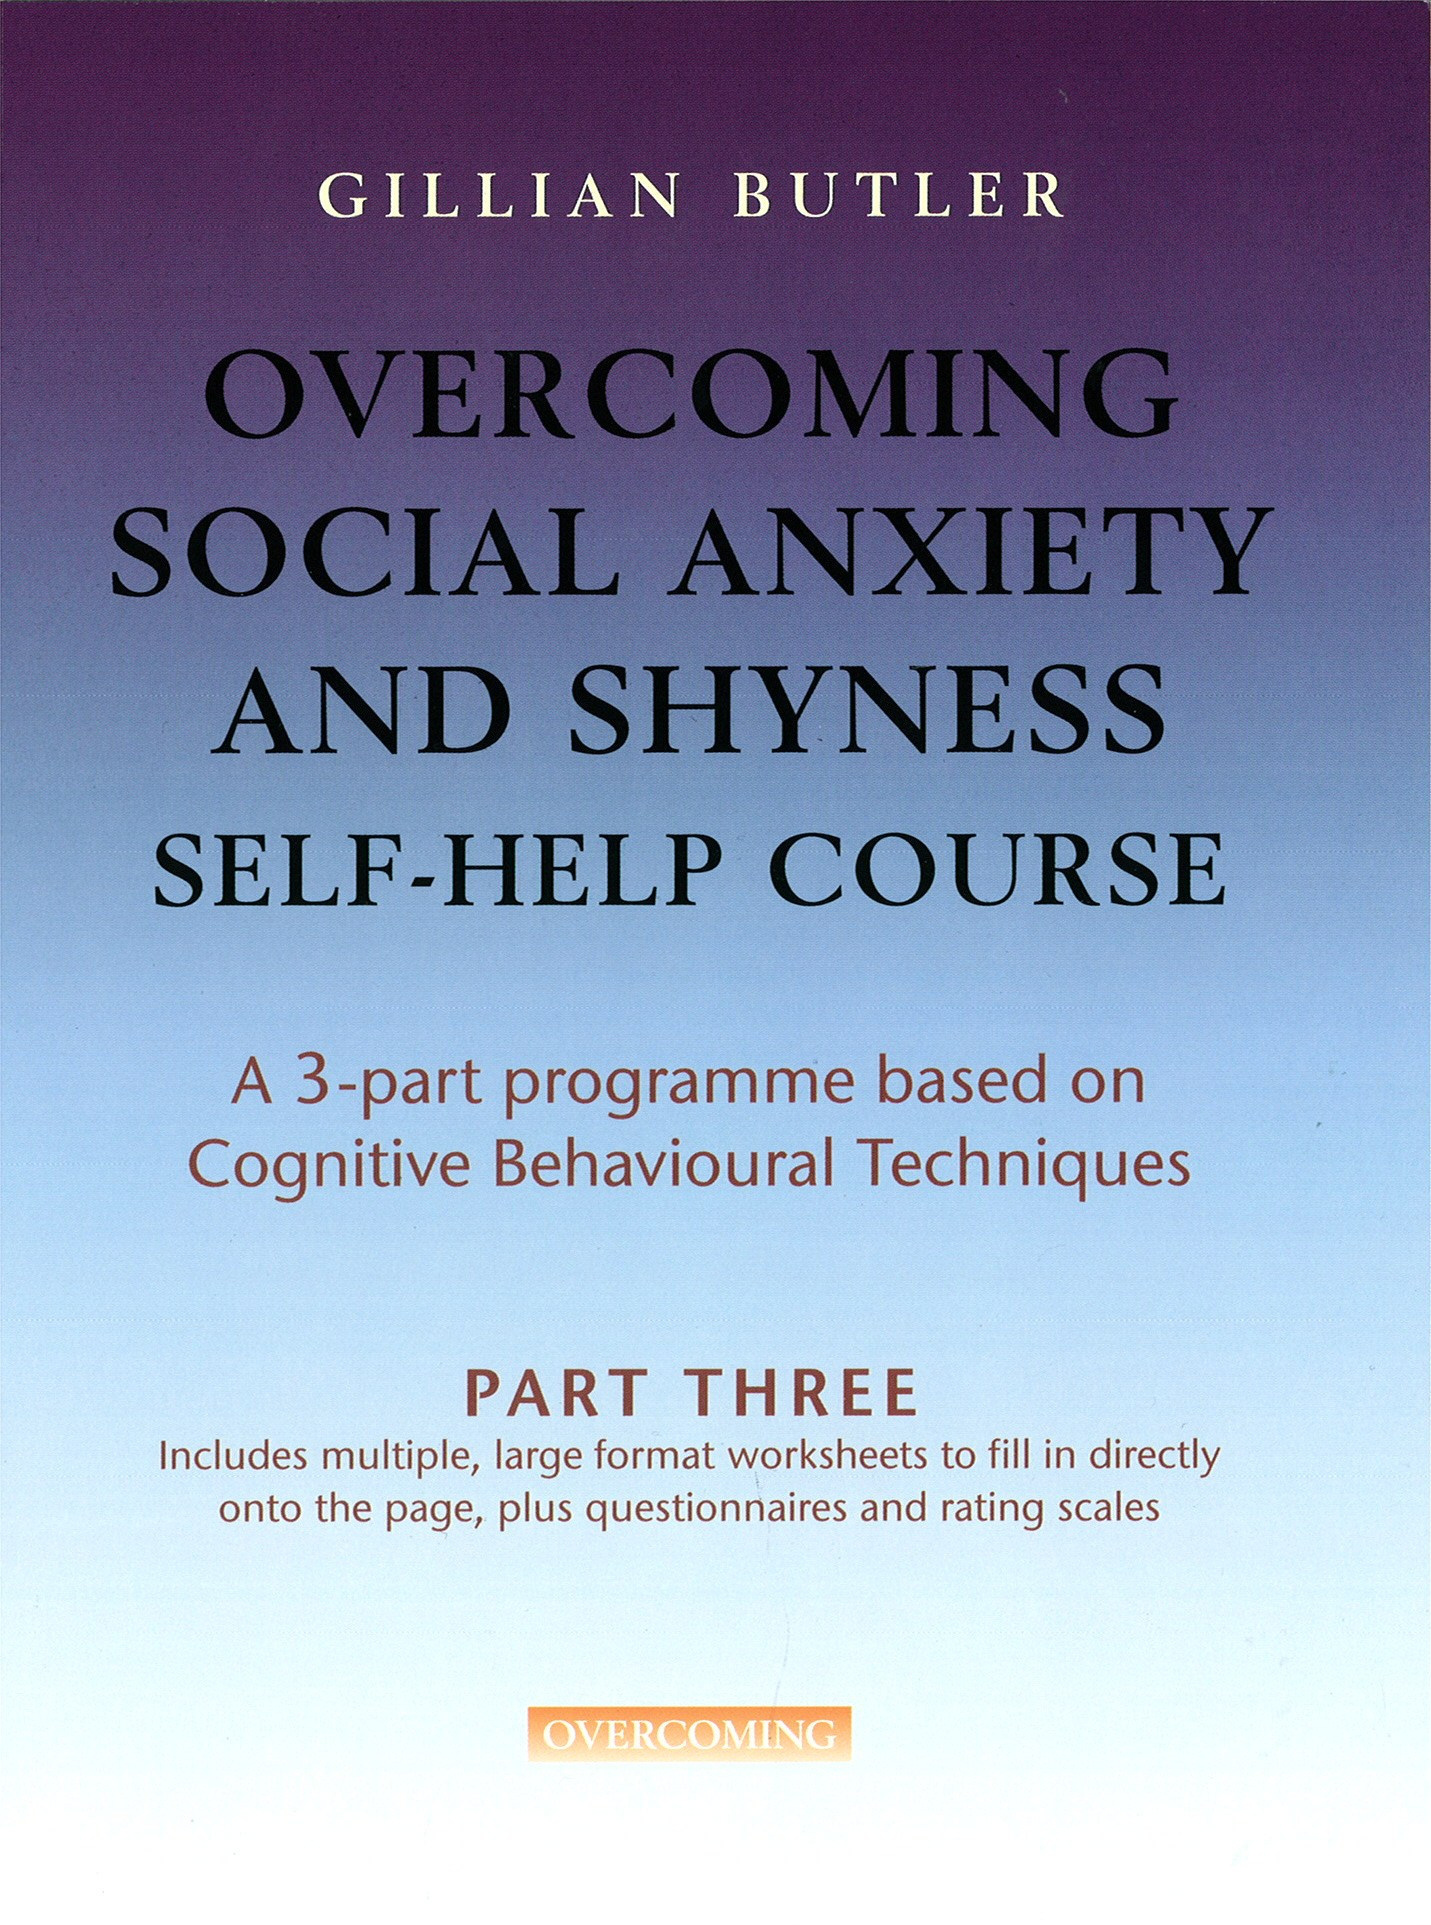 essay about overcoming shyness